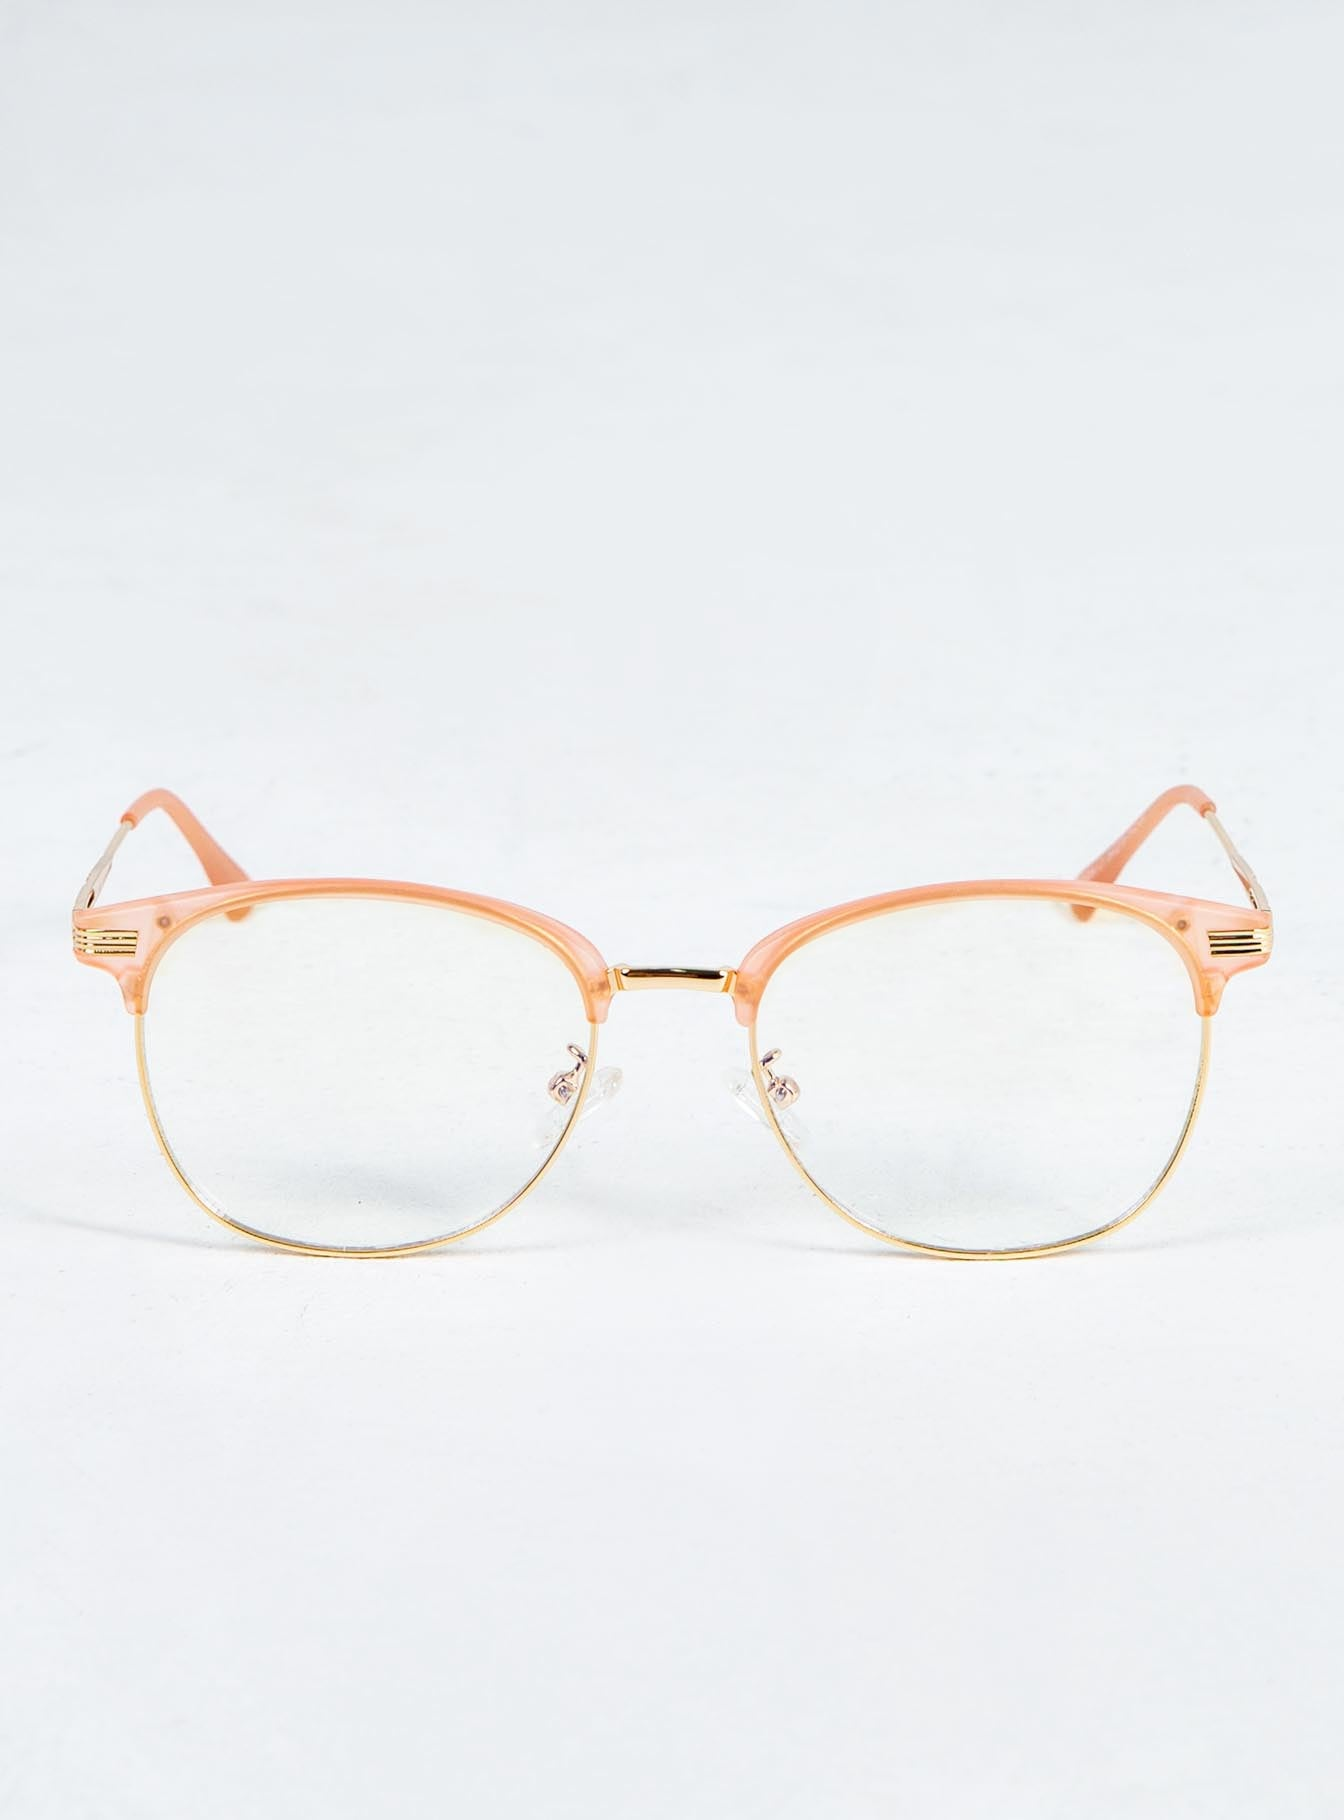 Dayze Blue Light Glasses Rose Gold